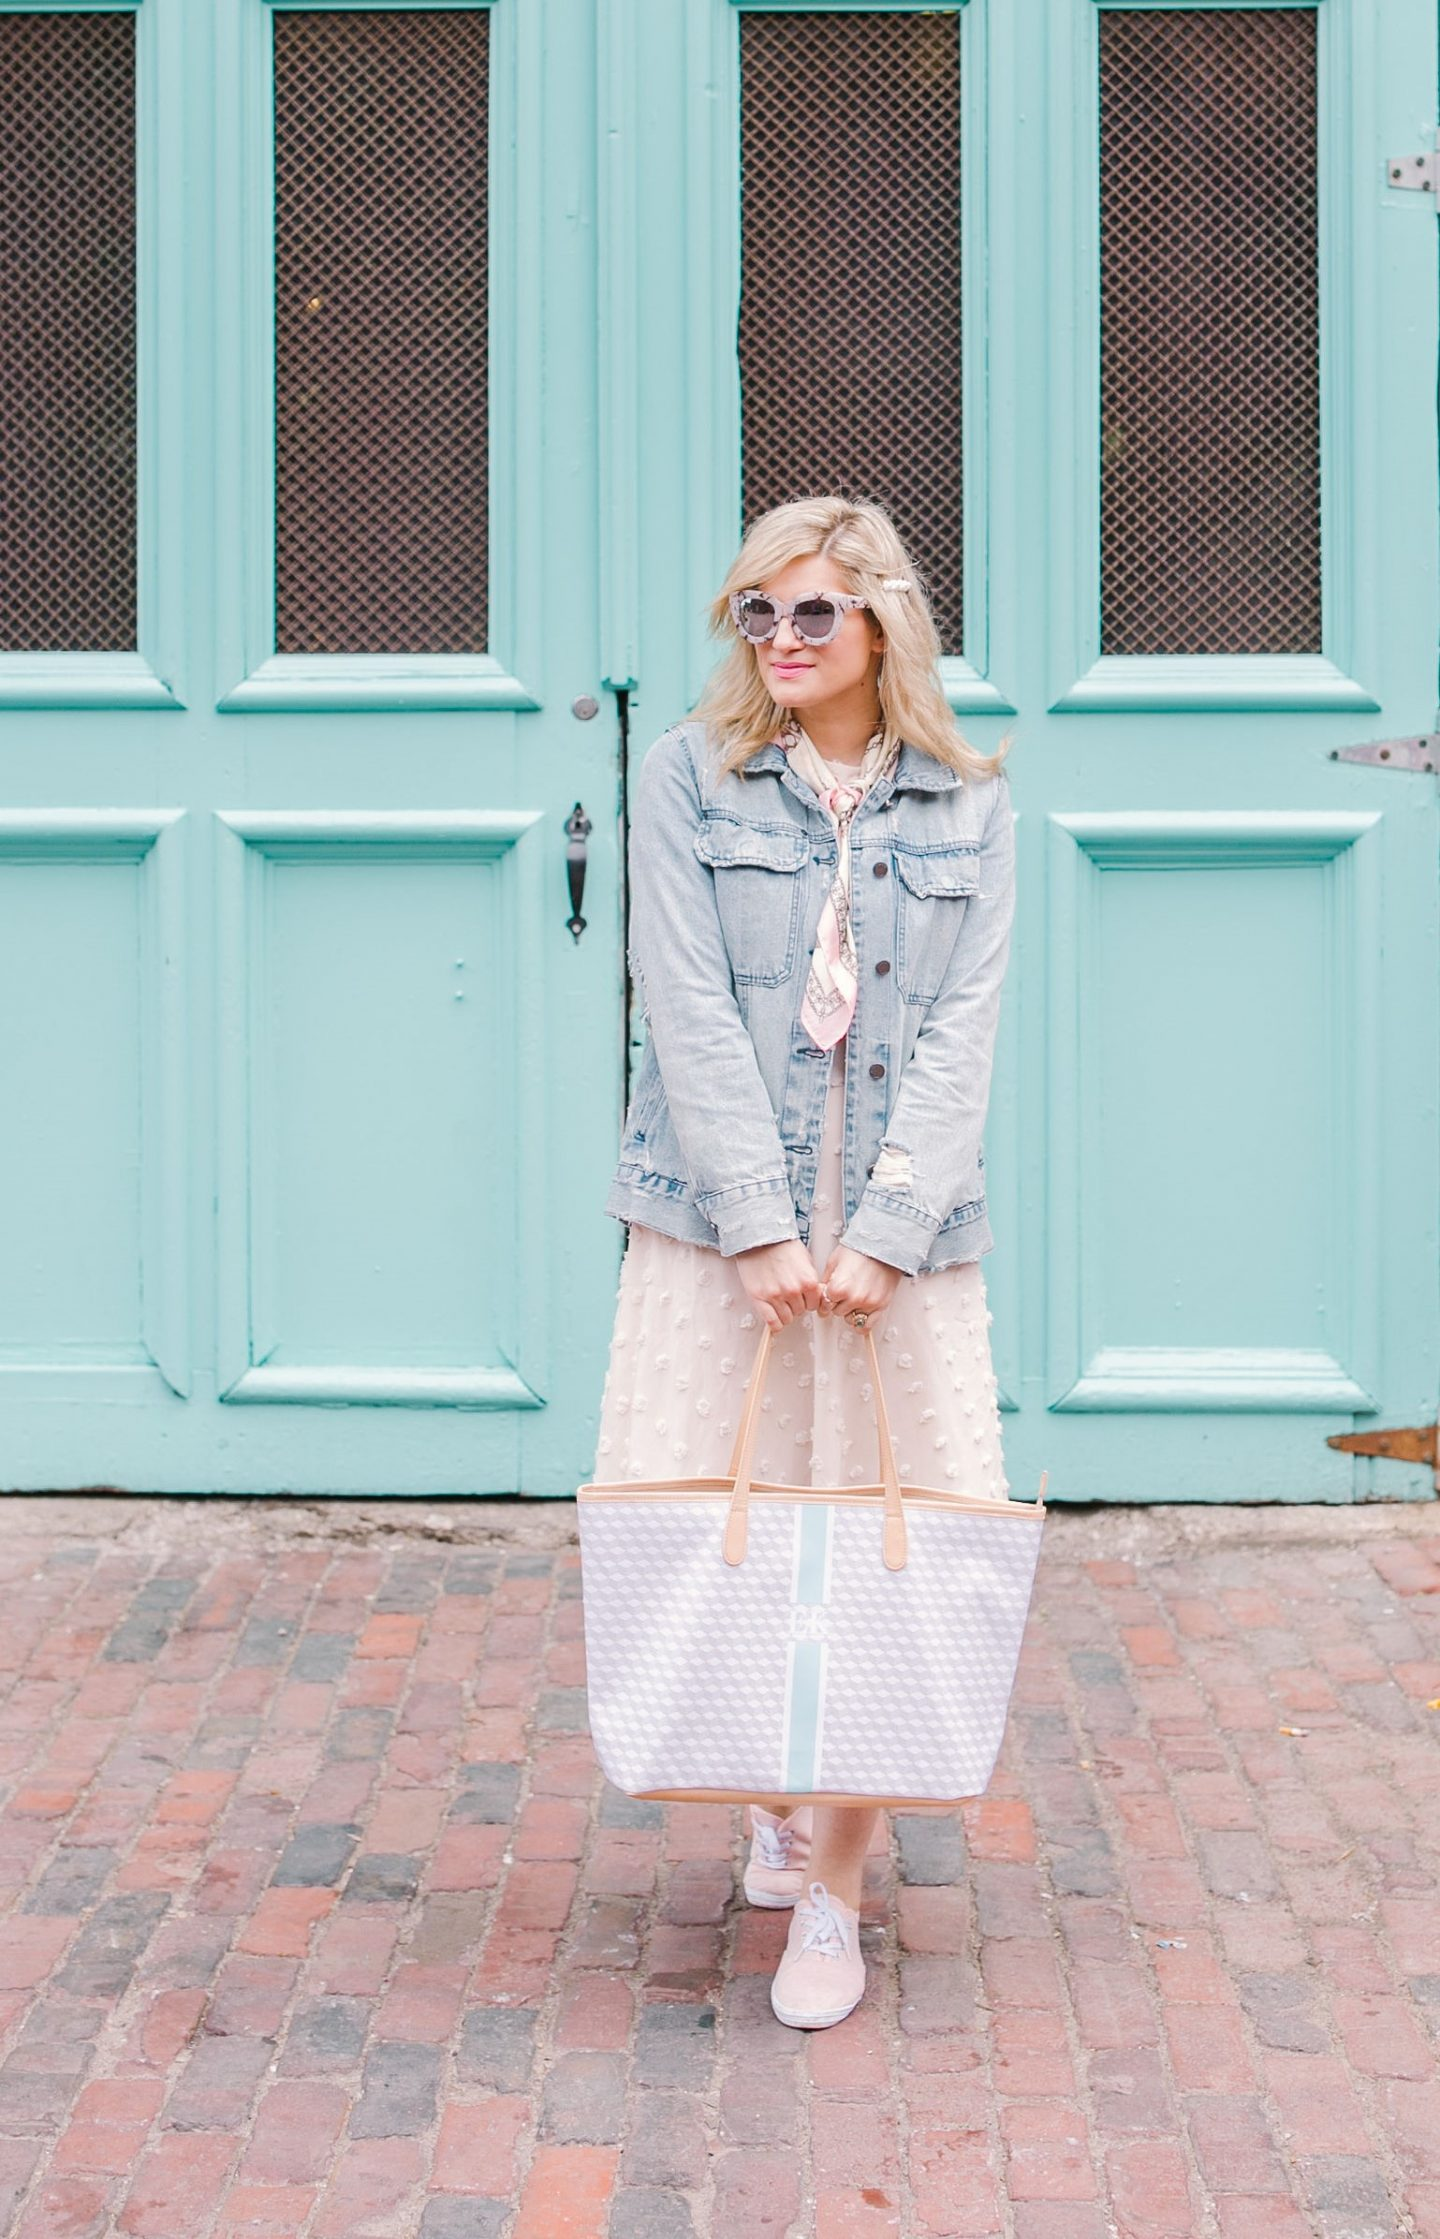 5 Reasons Why You Need a Tote Bag. Super easy to use as a diaper bag too